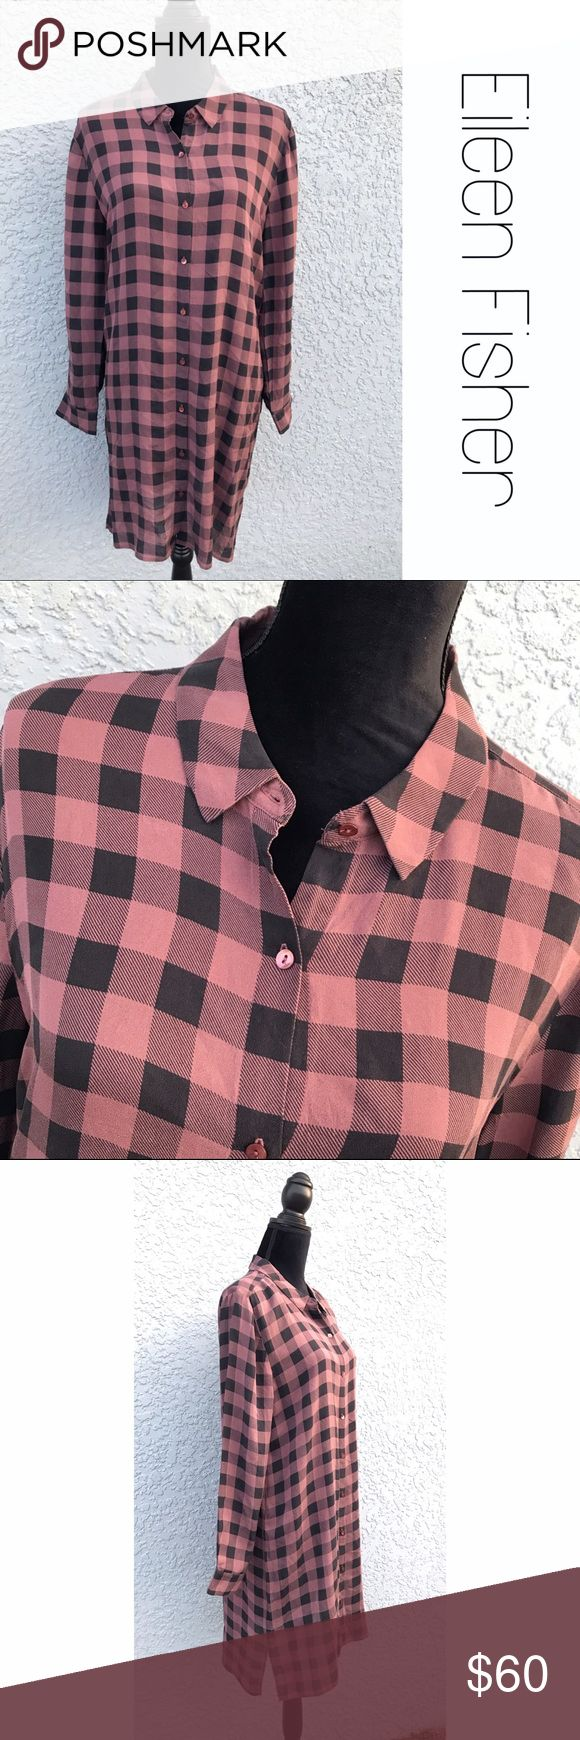 """Eileen Fisher Sheer Plaid Tunic Top Dress M Pretty mauve/pink and black check plaid sheer Tunic top from Eileen Fisher. 34"""" from shoulder to hem. Could be worn as a dress too.  EUC.  Size med. B8 Eileen Fisher Tops"""